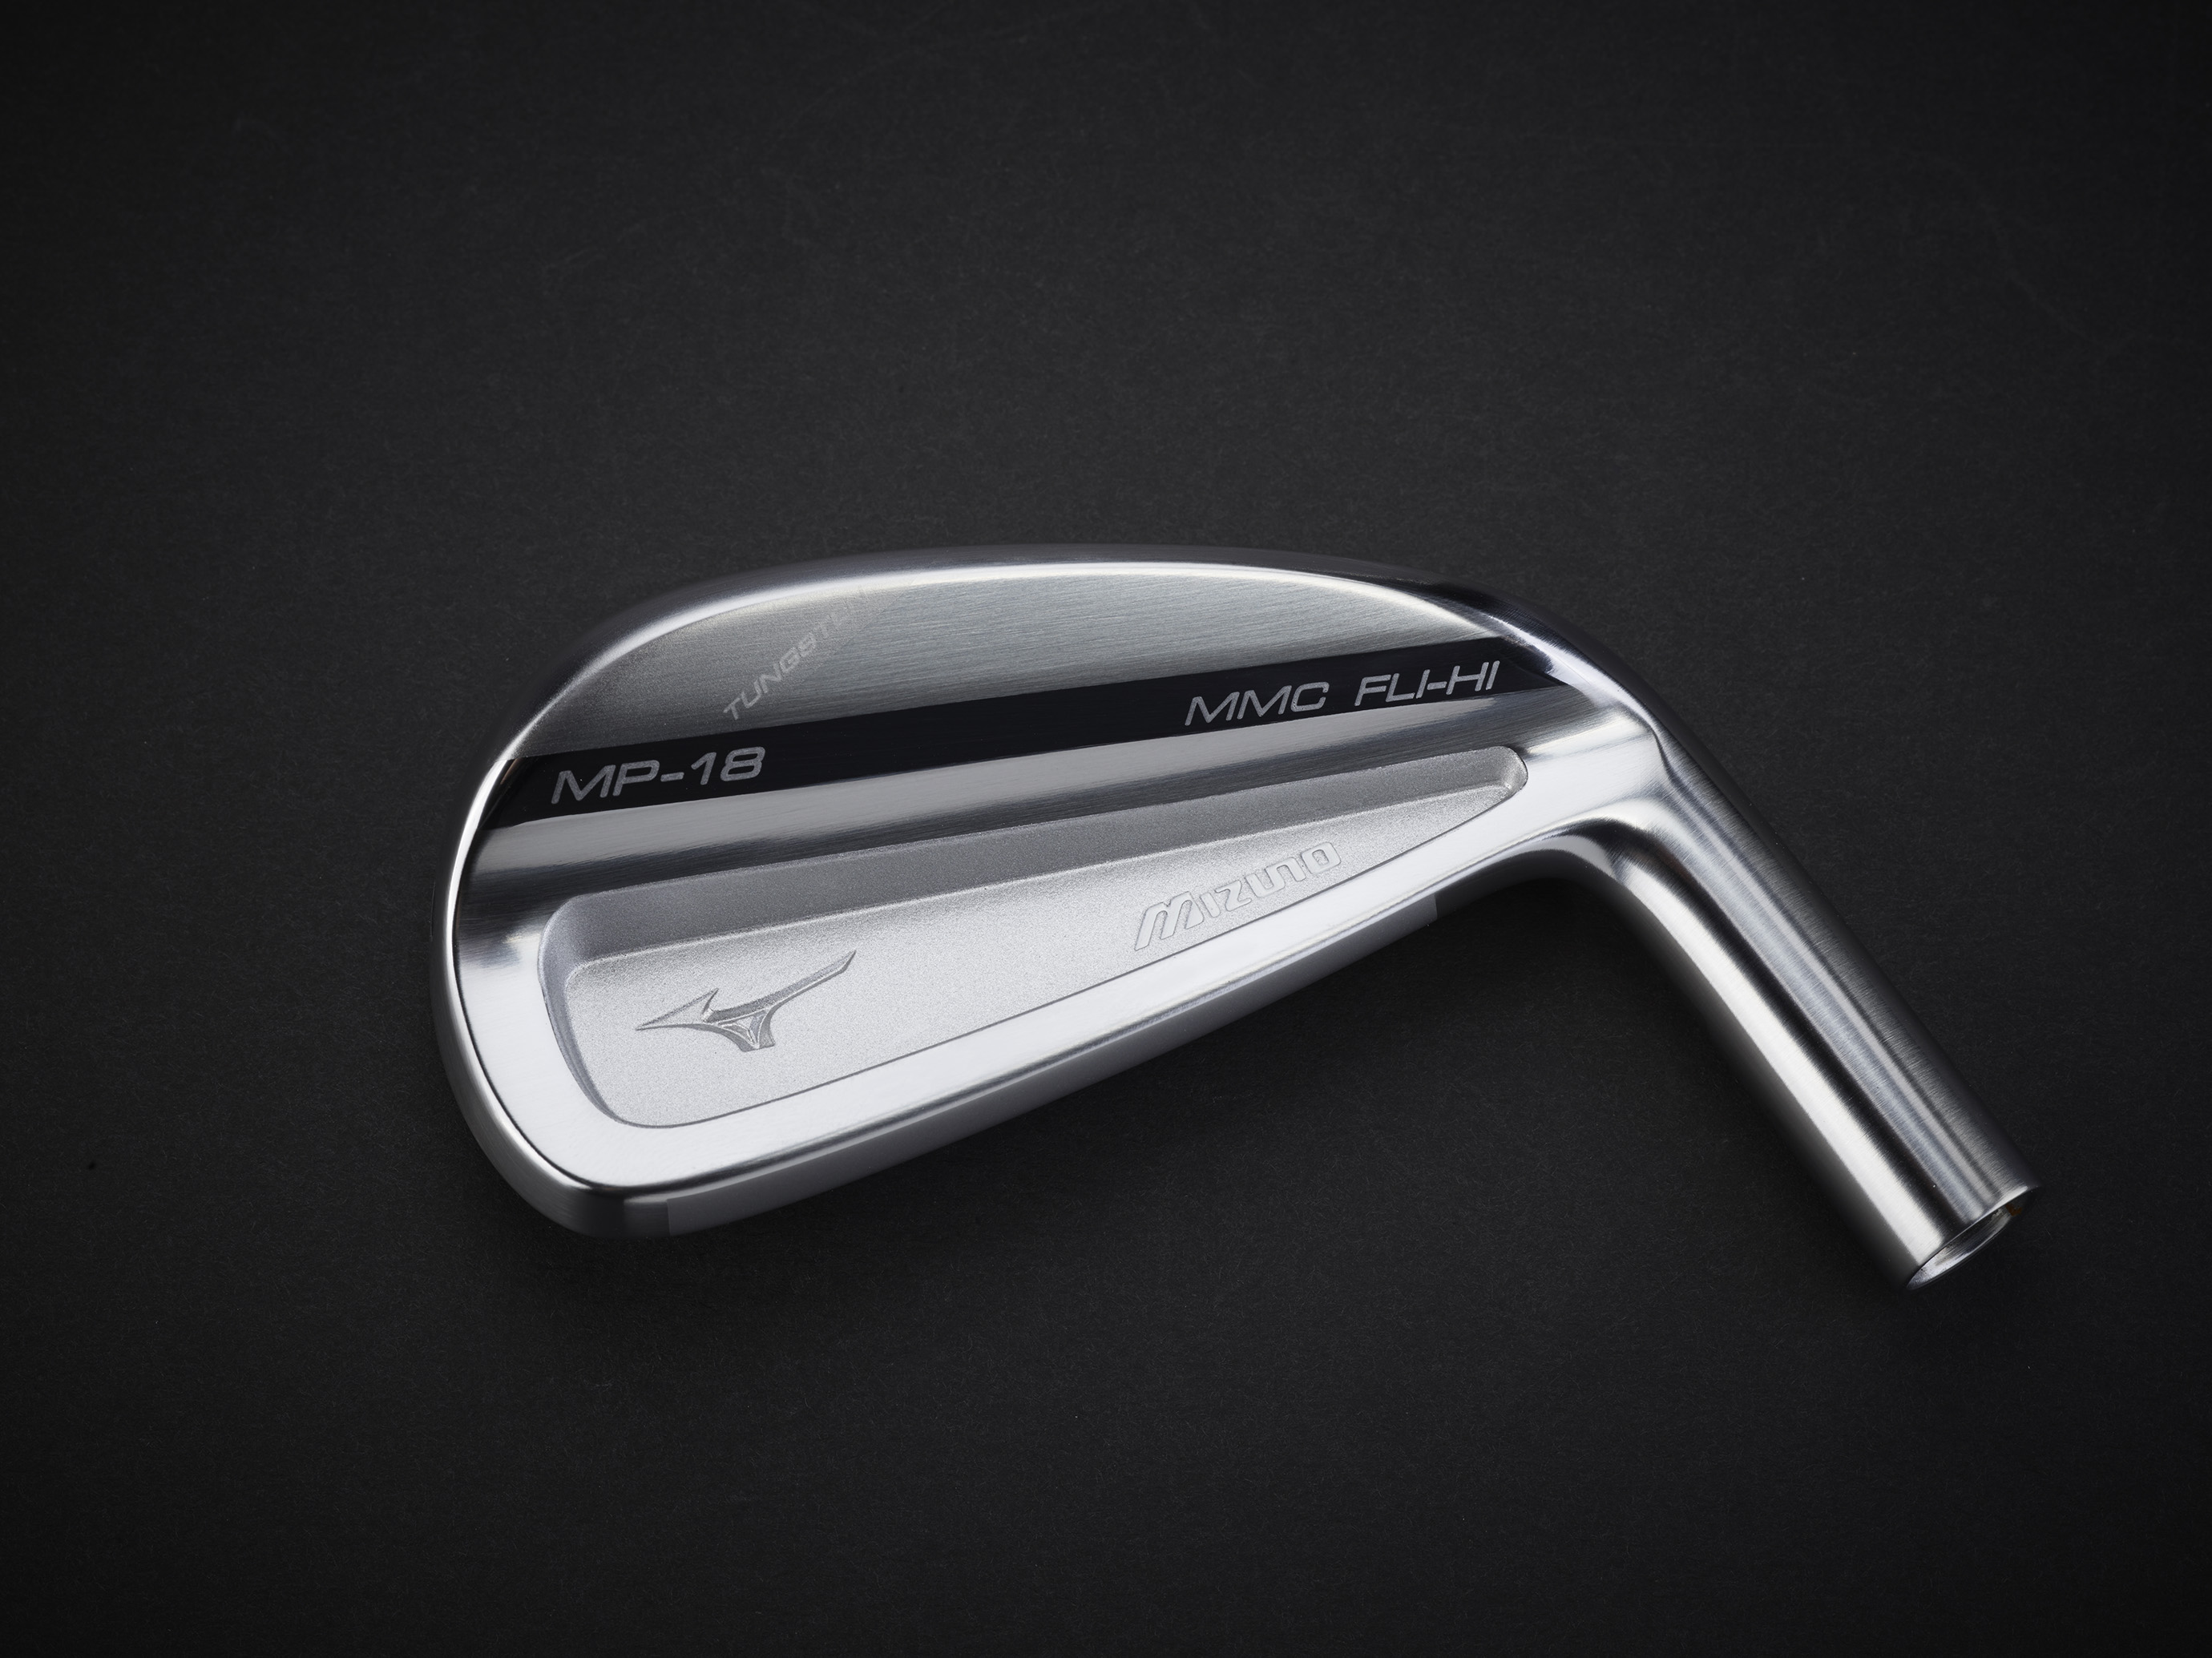 Mizuno Golf MP-18 MMC FLI HI Irons